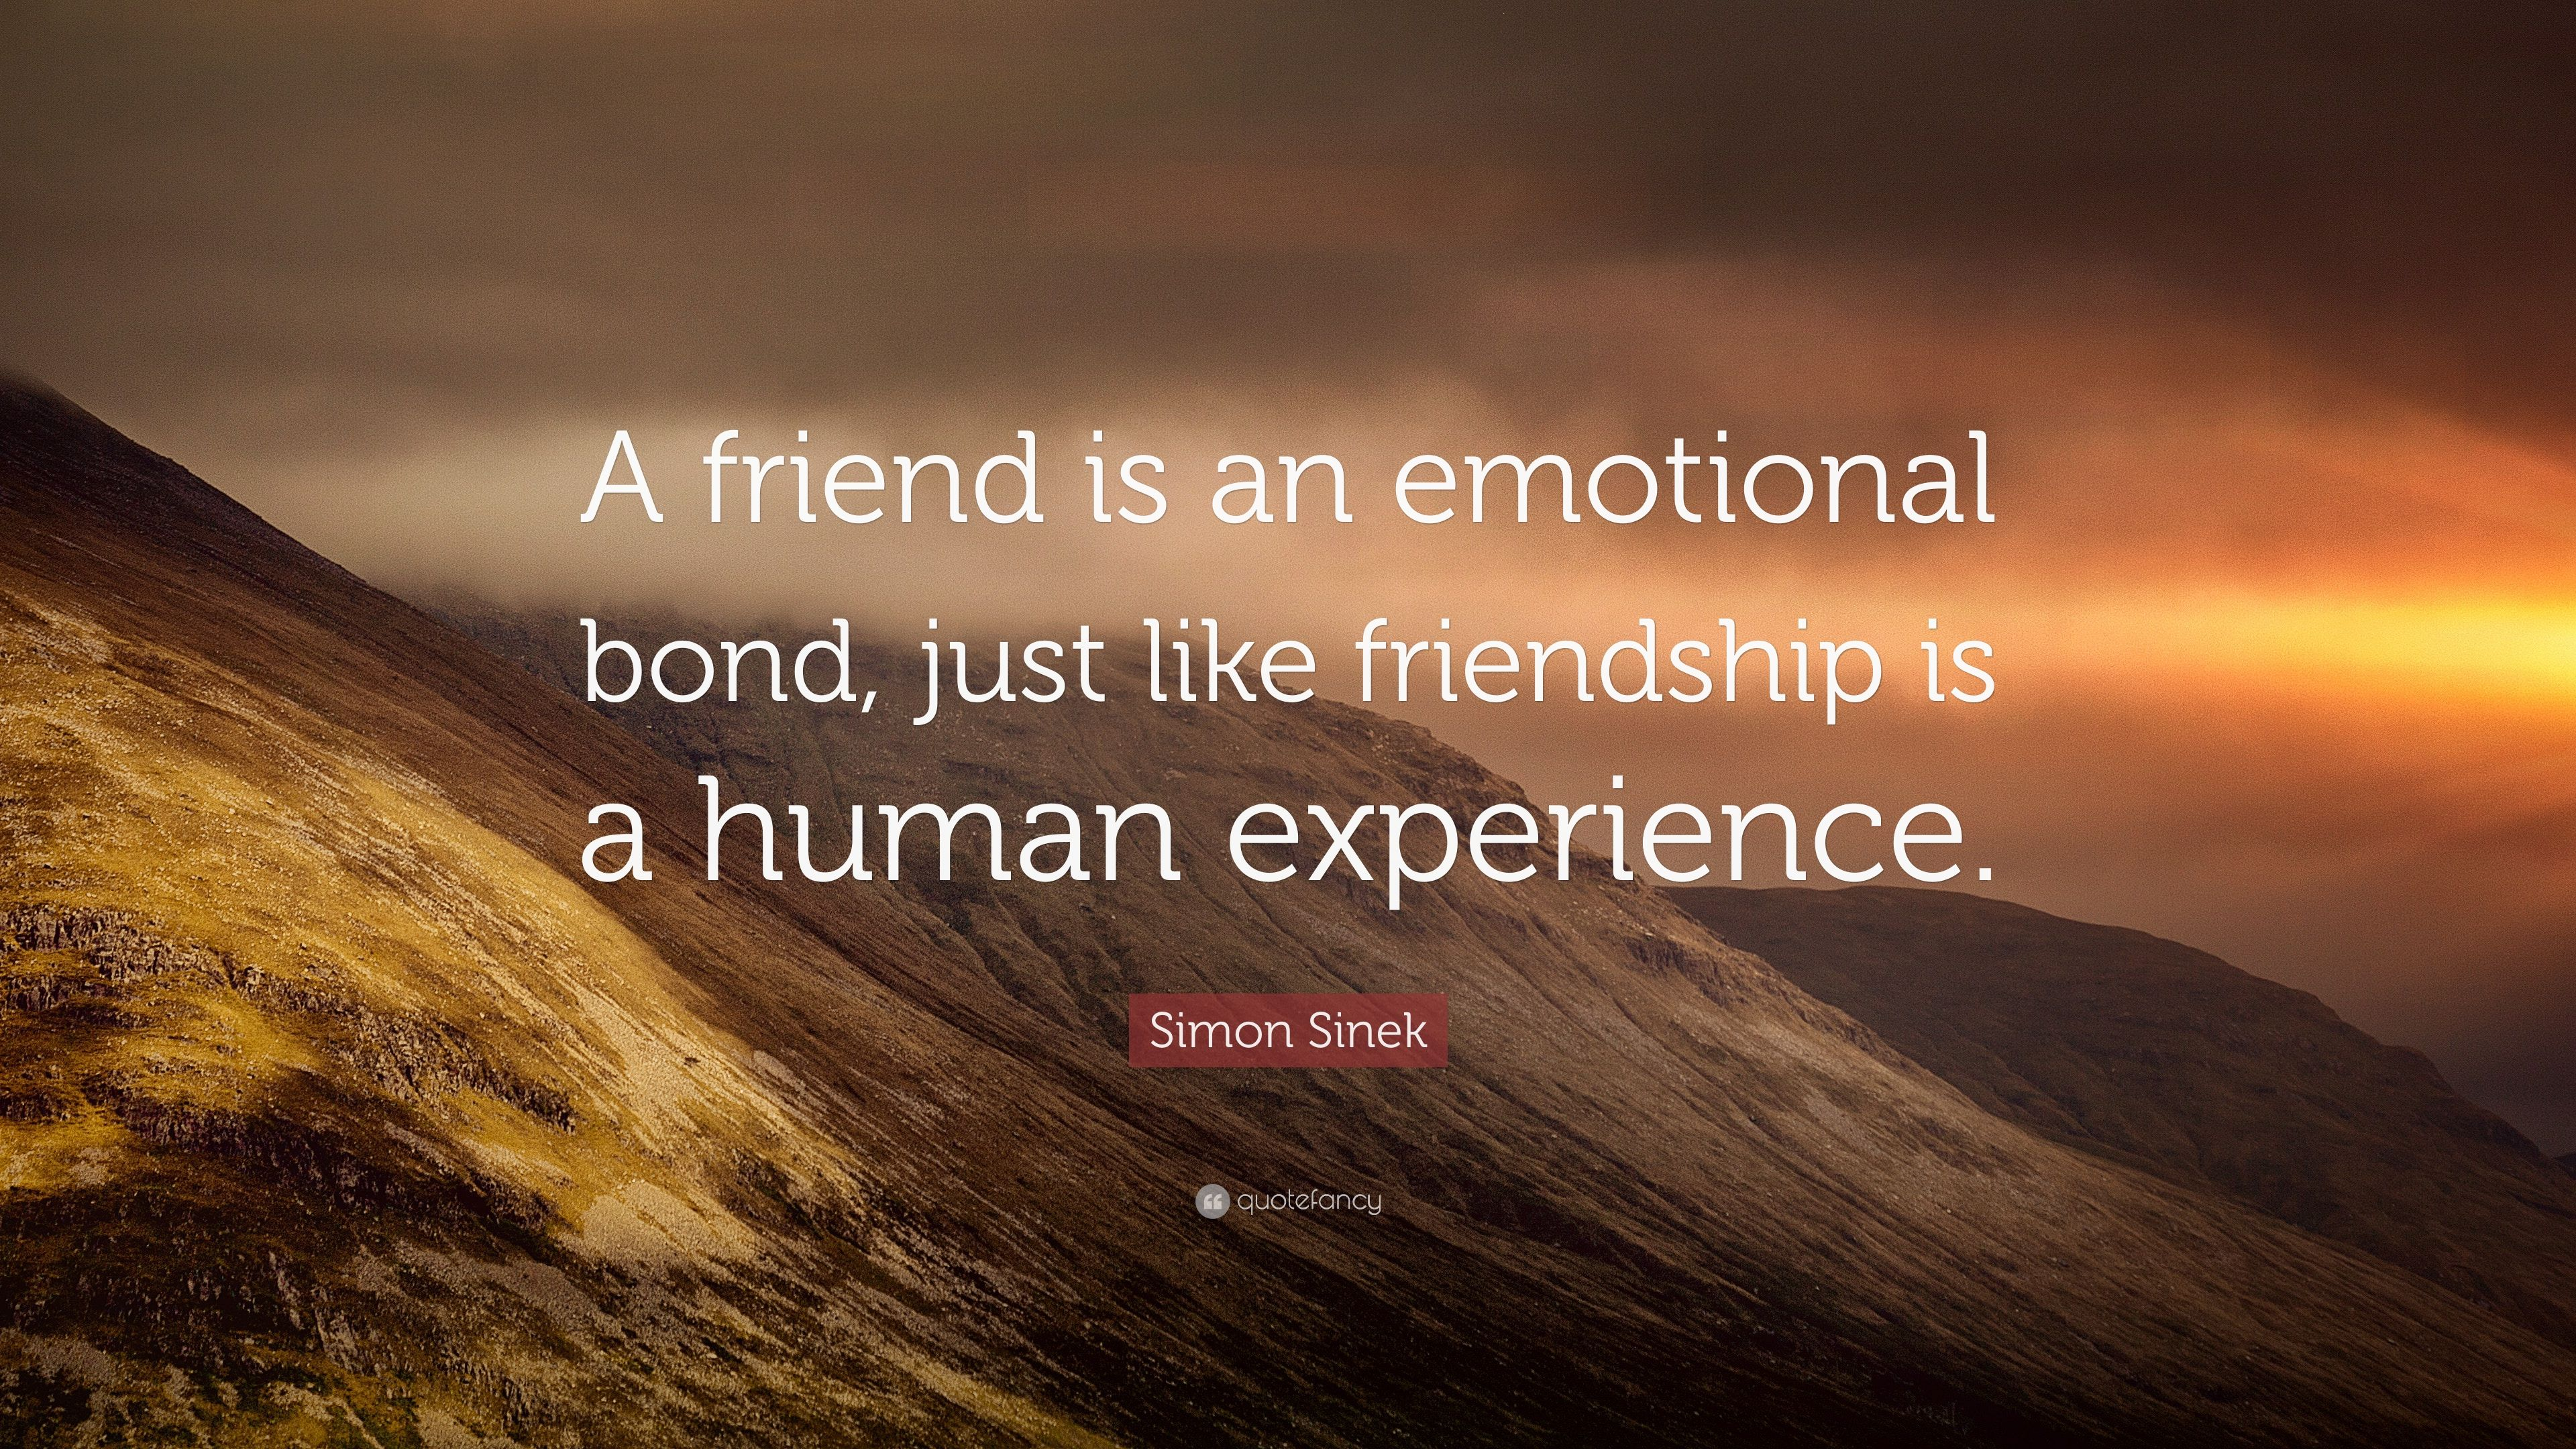 Image of: Sms Simon Sinek Quote a Friend Is An Emotional Bond Just Like Friendship Is Quotefancy Simon Sinek Quote a Friend Is An Emotional Bond Just Like